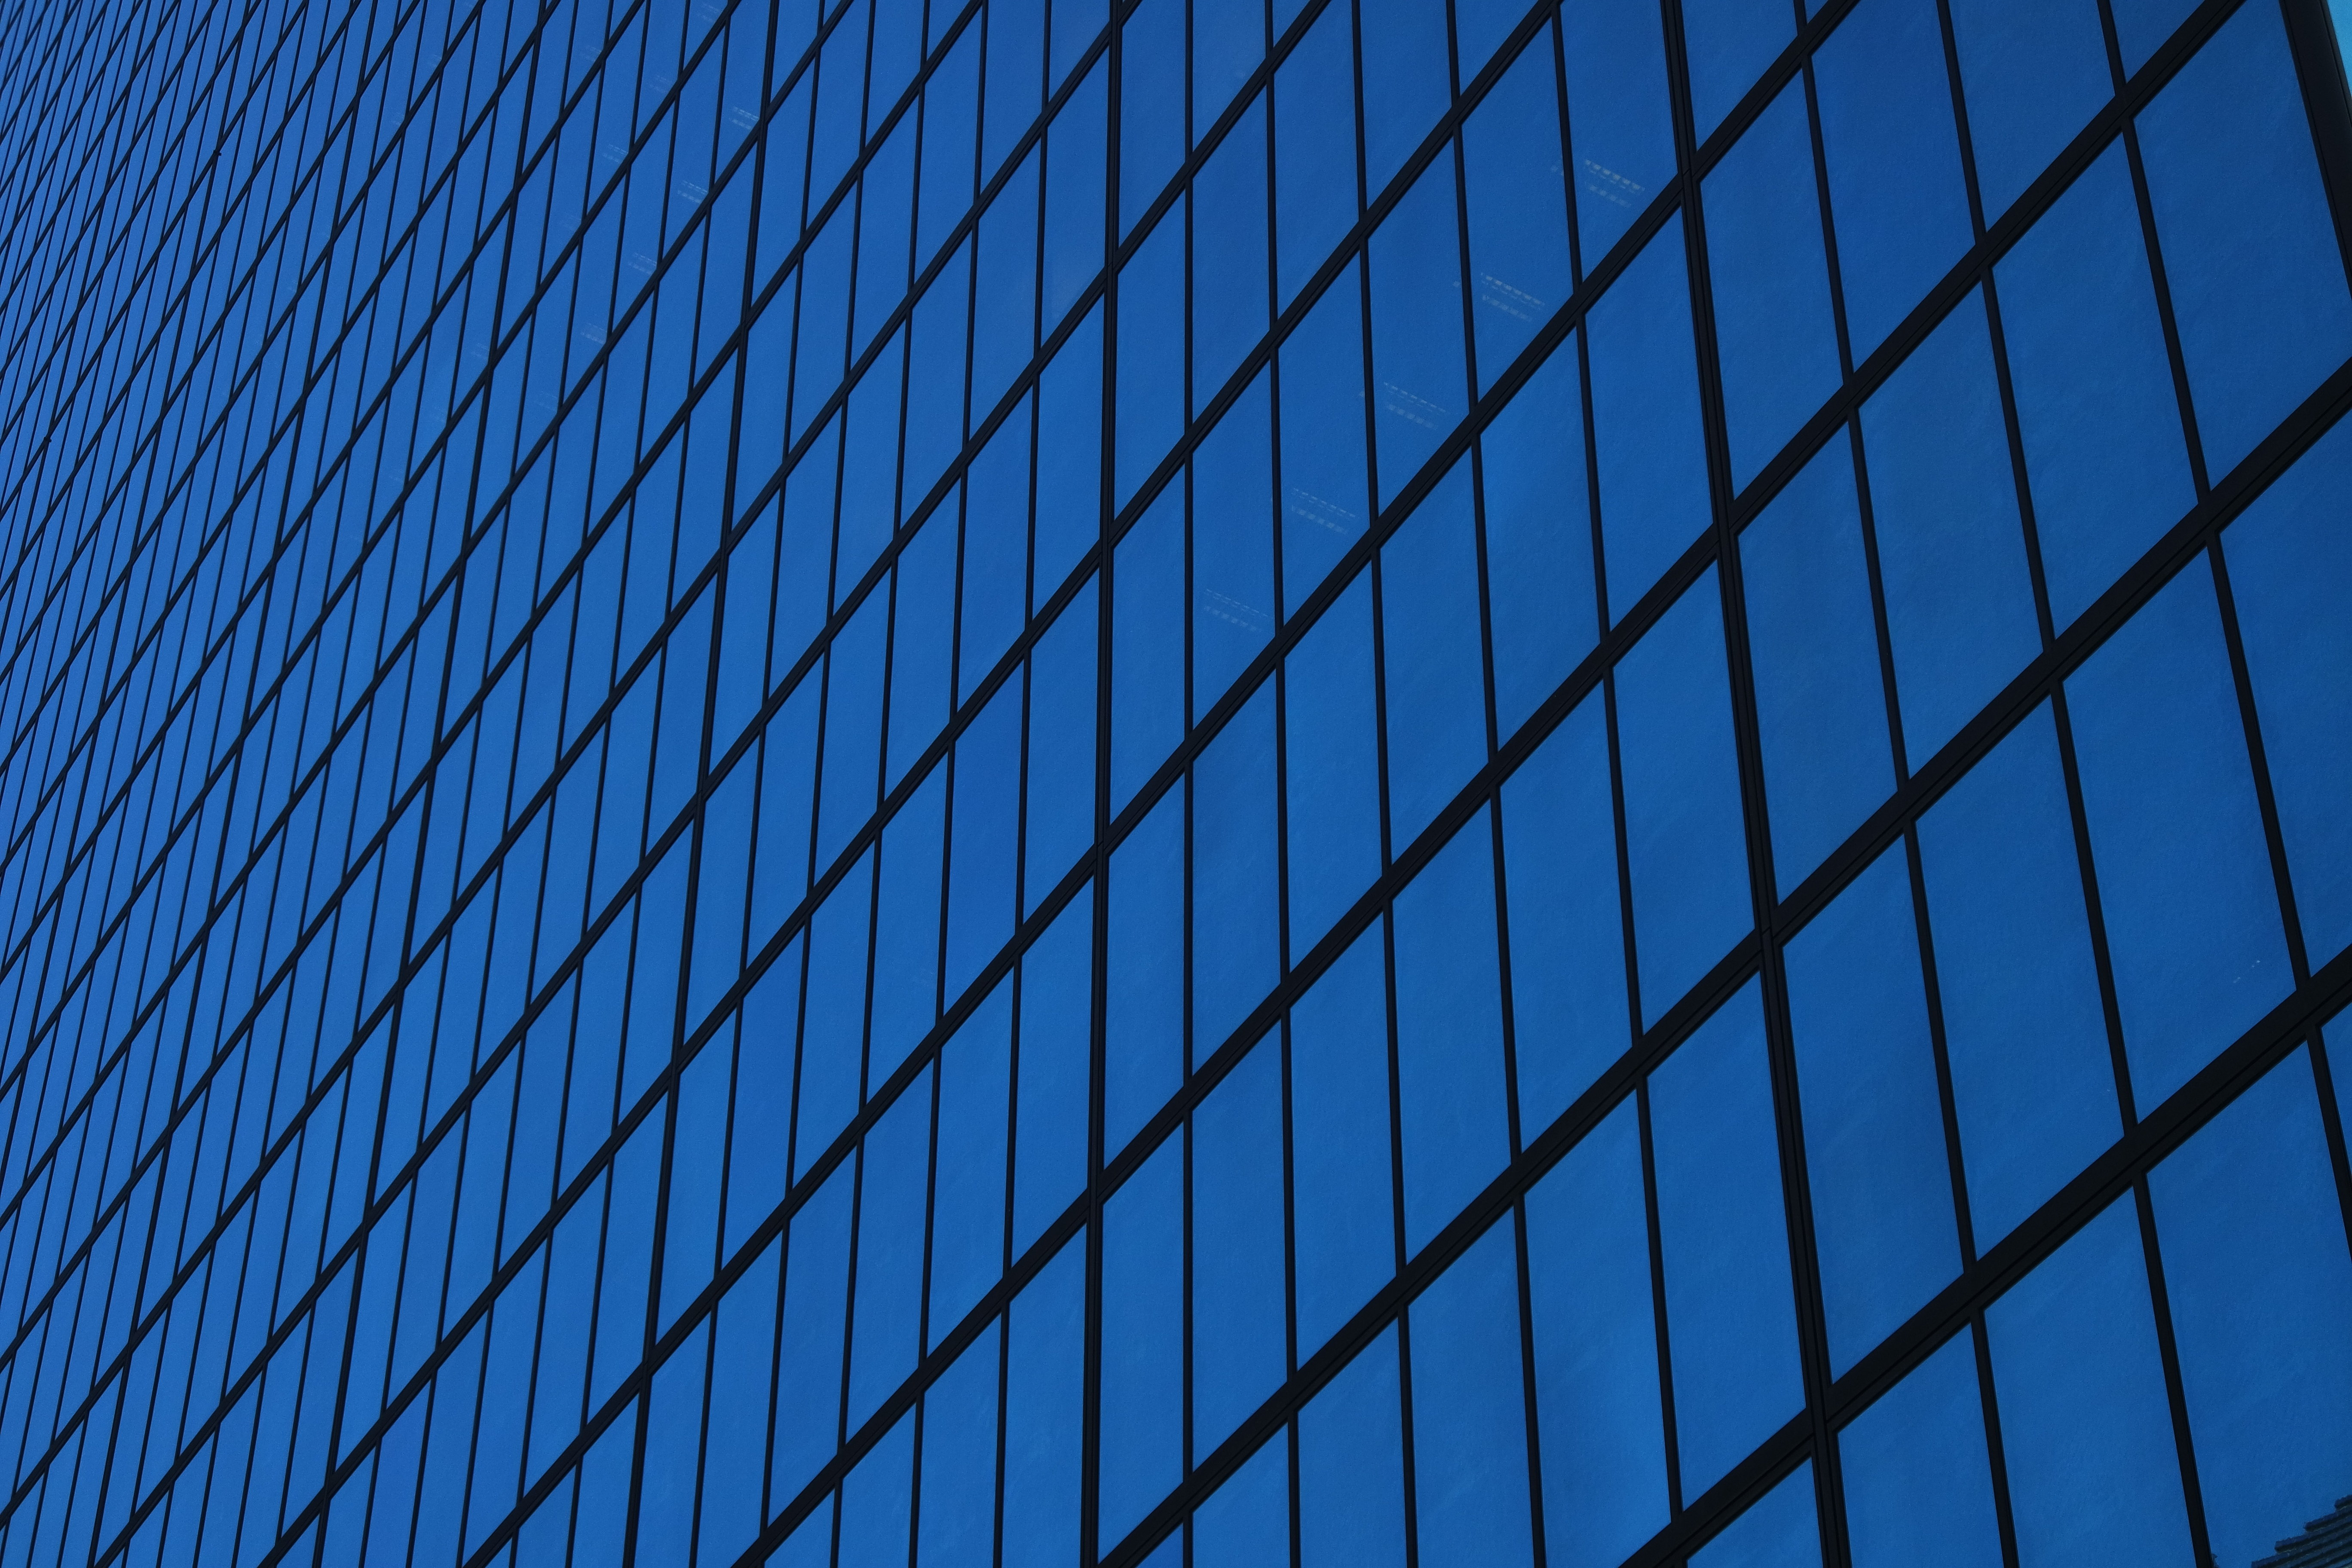 A sample photo of a building's windows shot by the Samsung NX3000.